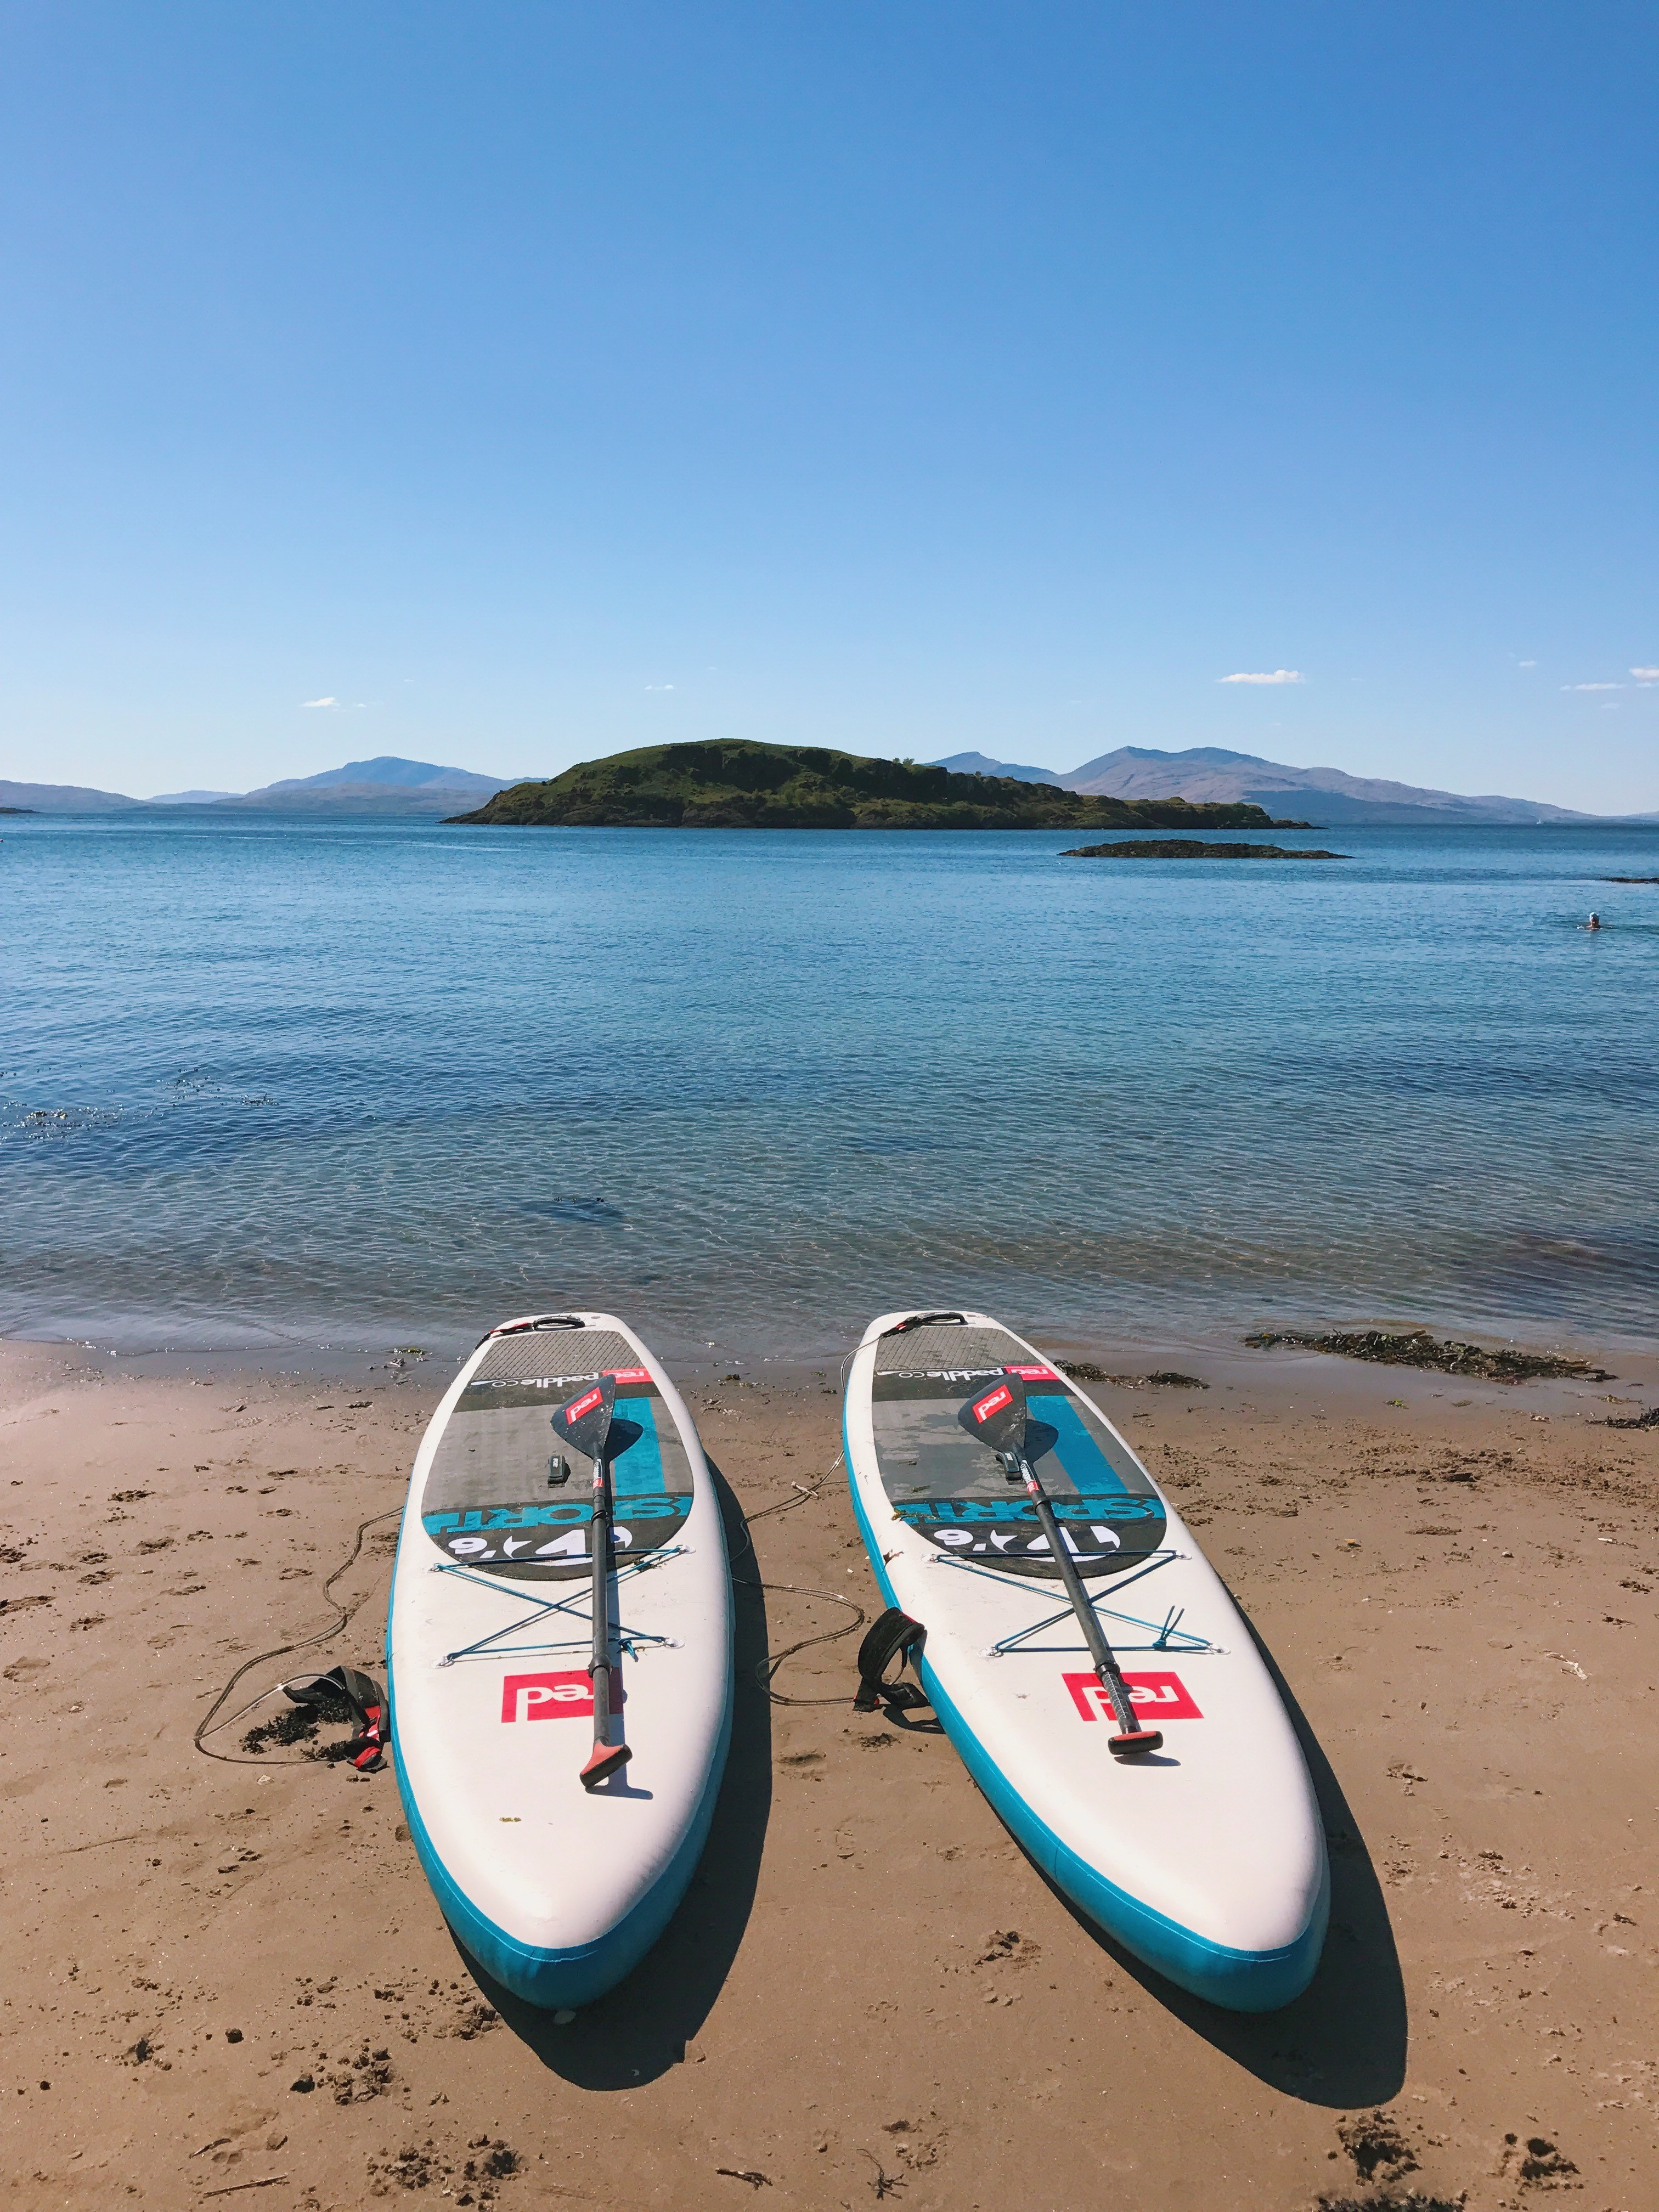 Beach paddle boards